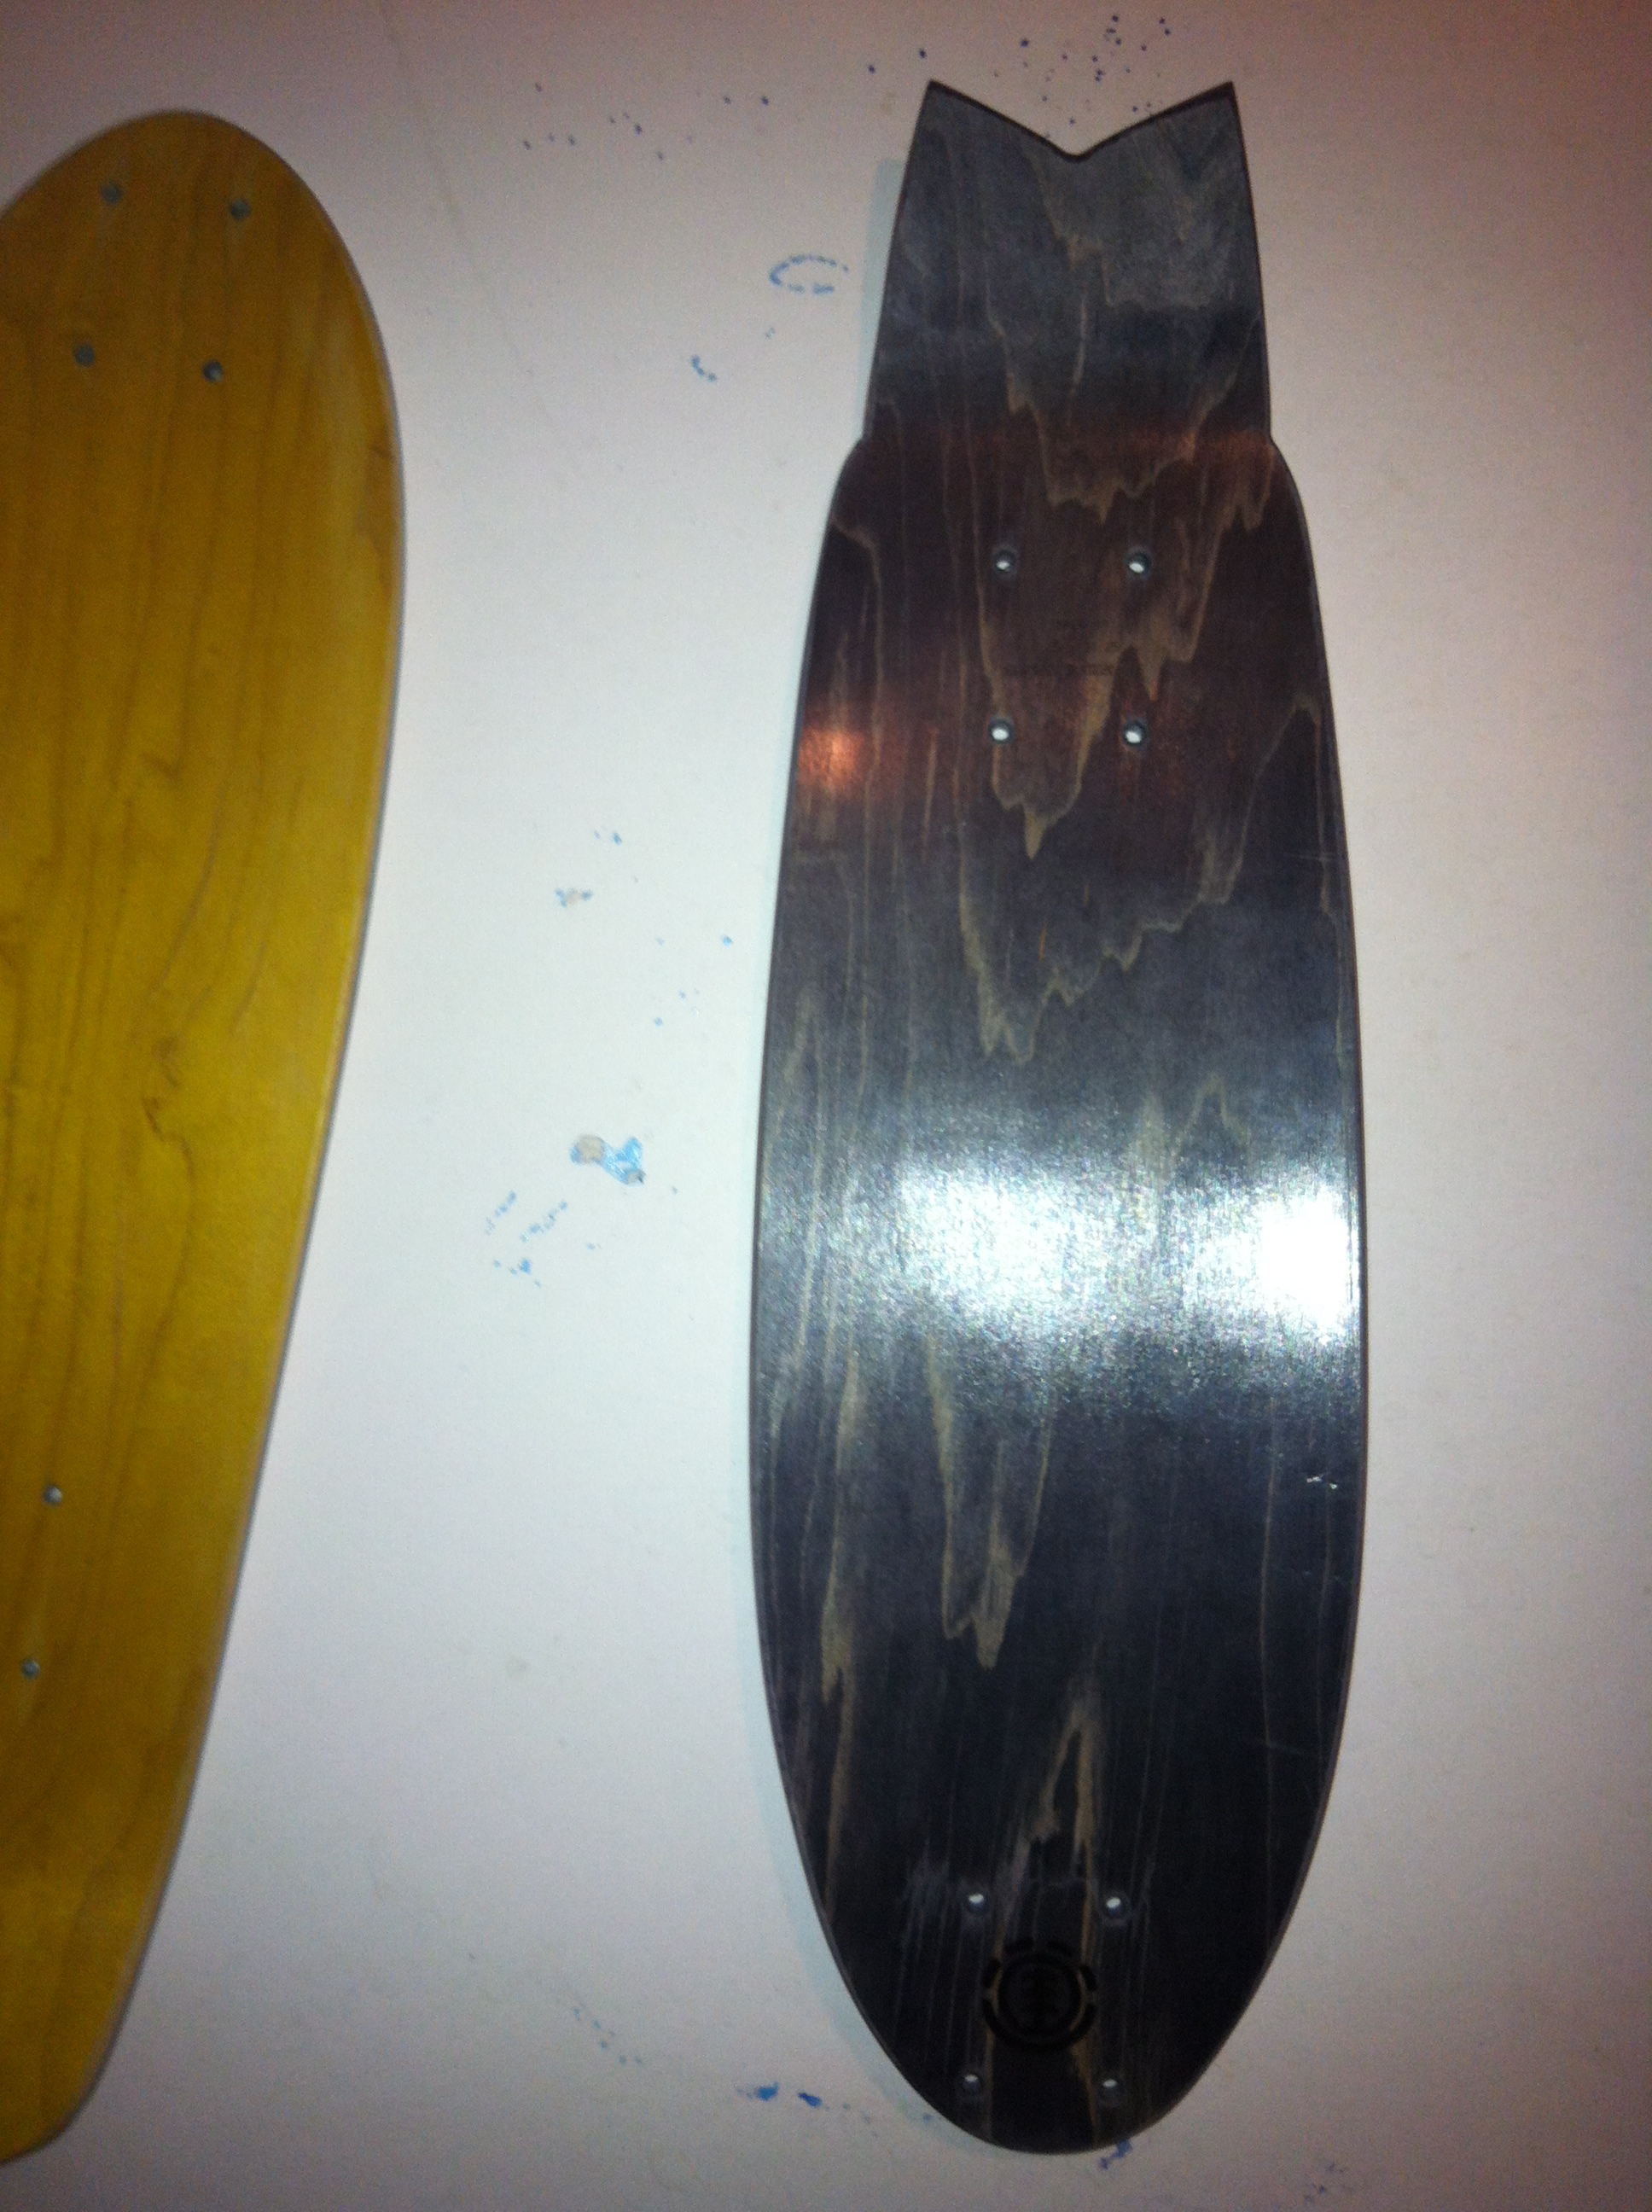 recycled 7 ply skateboards > cruiser & fish decks